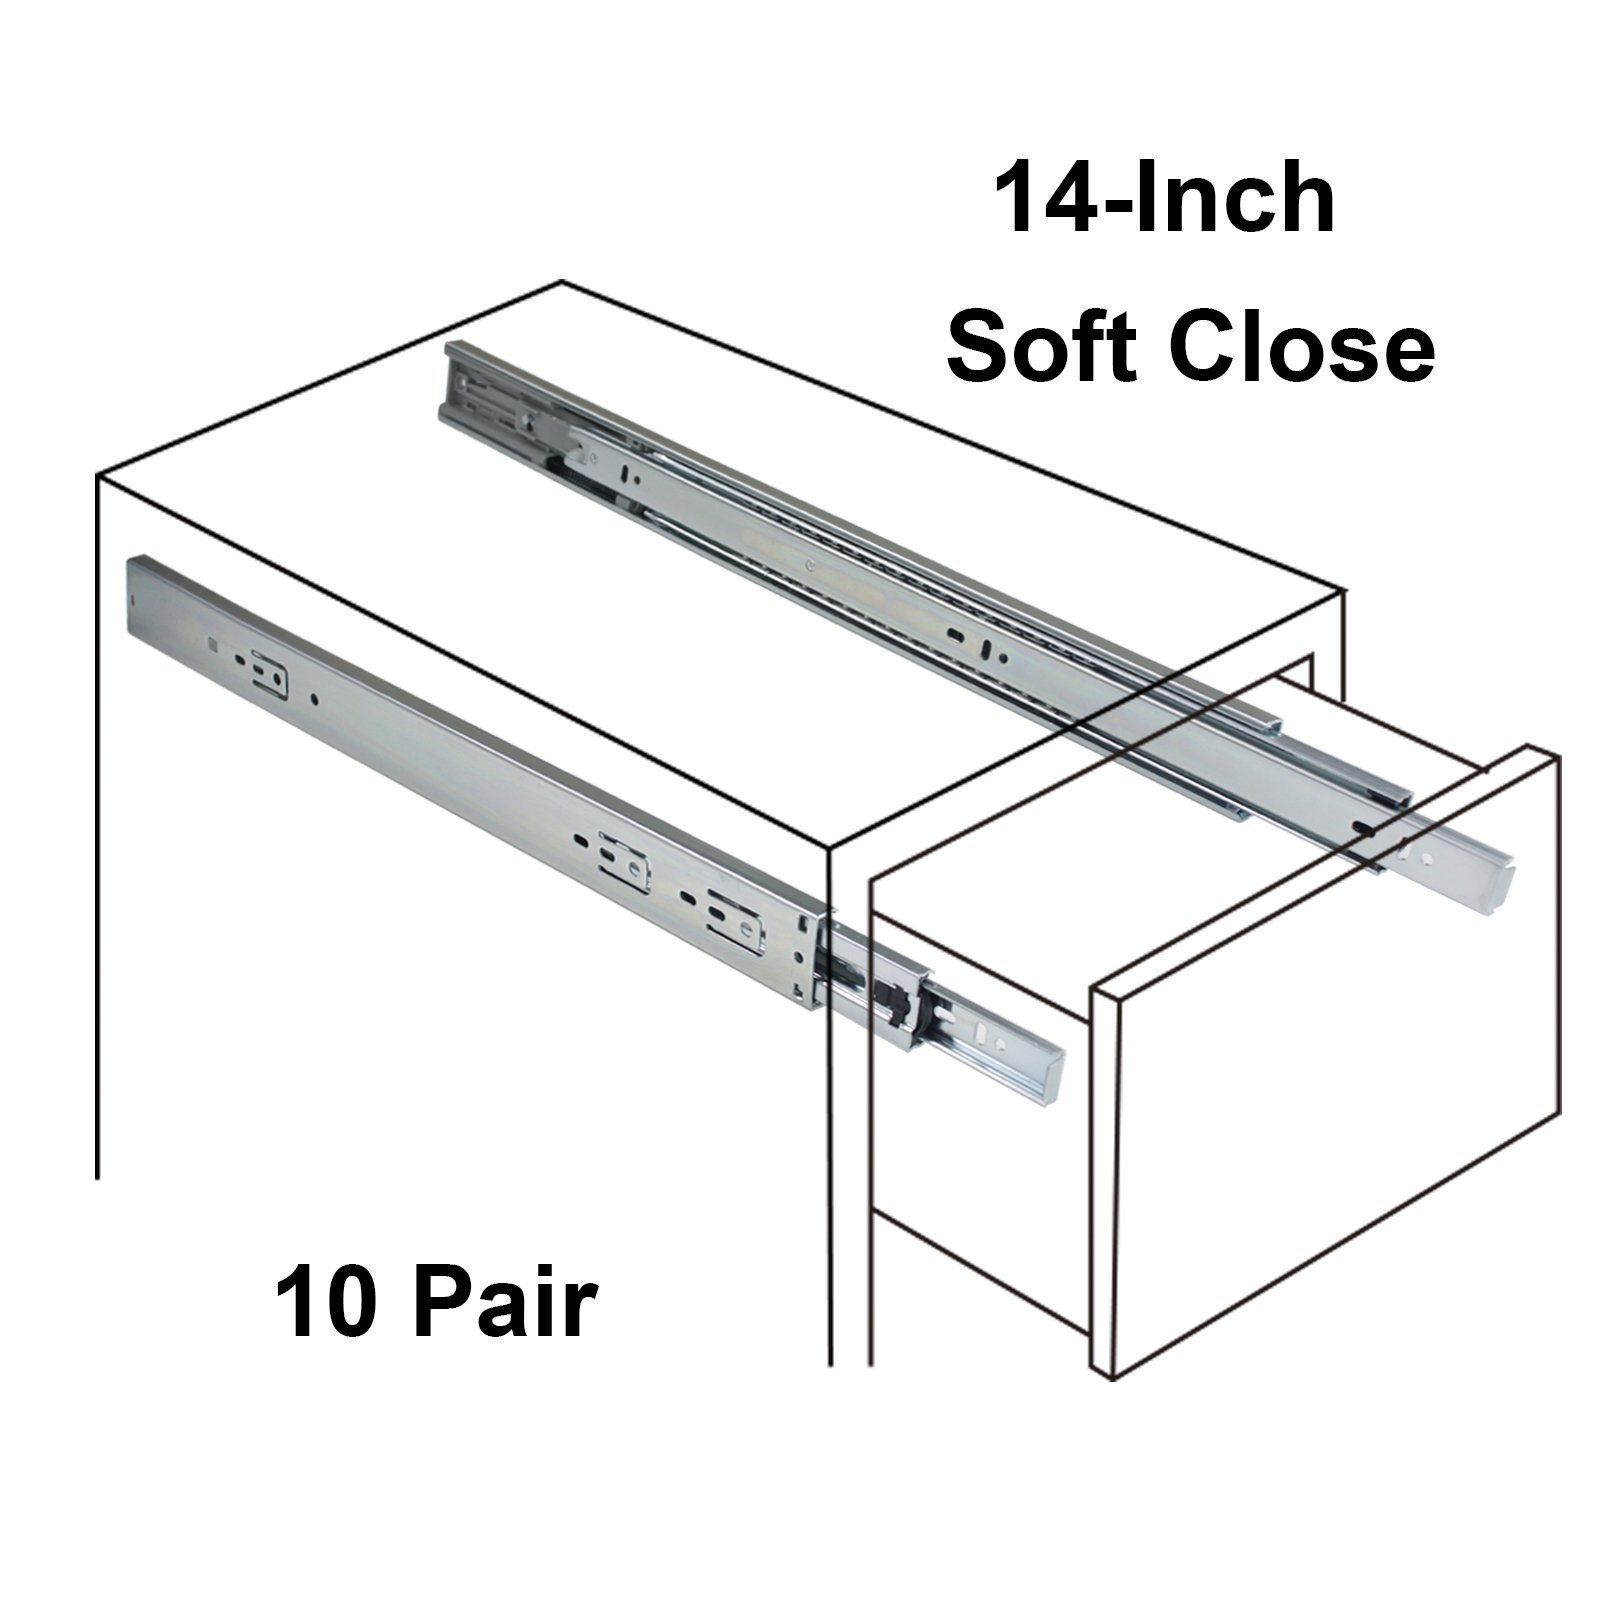 Gobrico Full Extension Soft Close Ball Bearing Drawer Slides 3Folds 10Pair, 14 Inch, Side Mounted